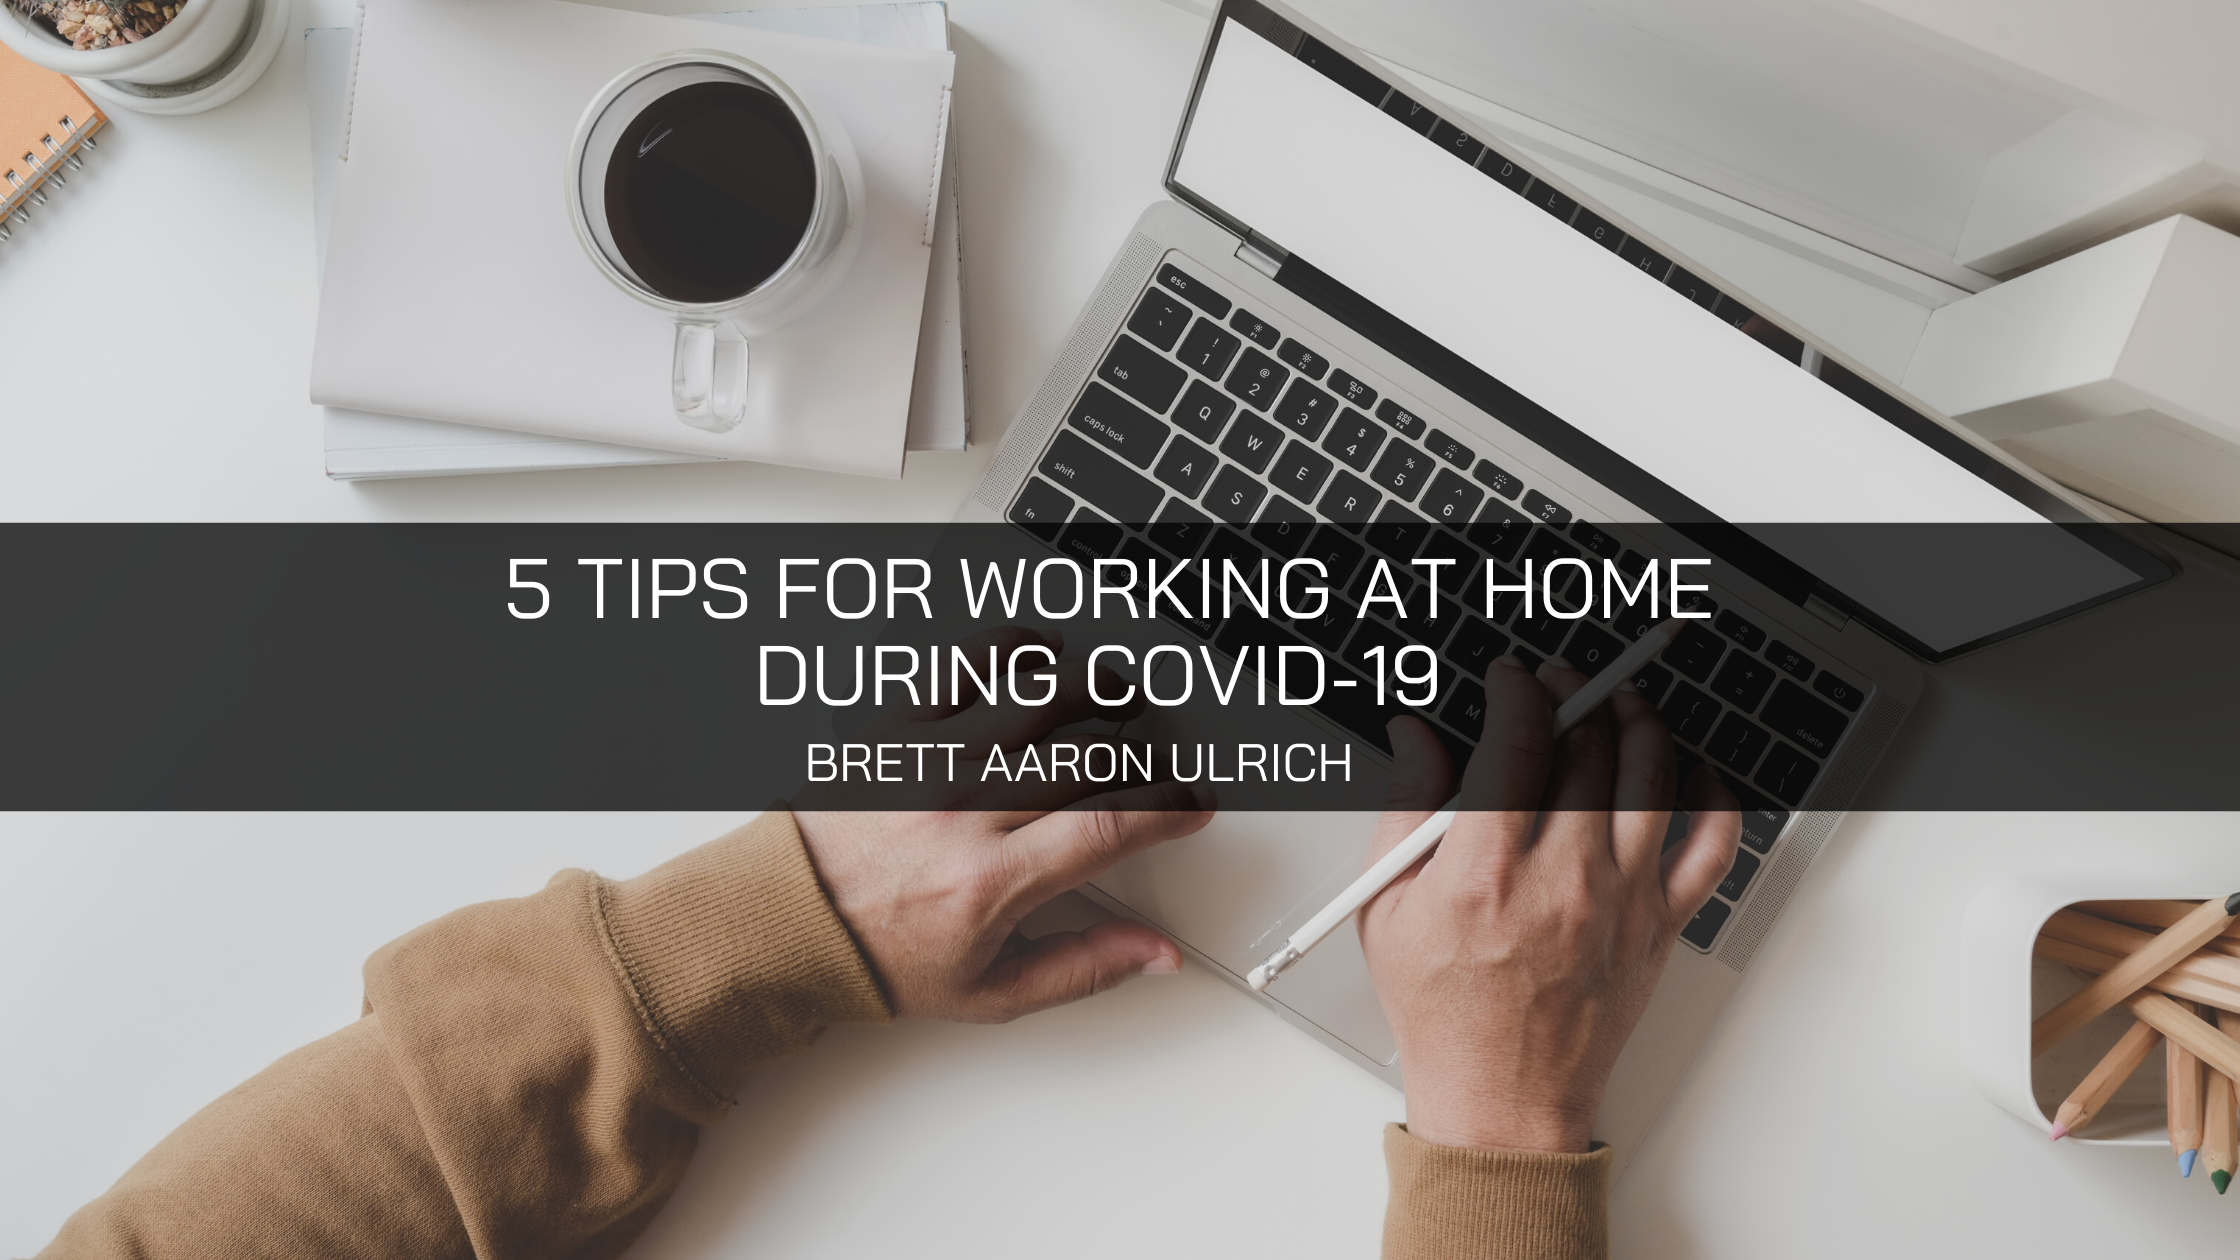 Brett Aaron Ulrich Provides 5 Tips for Working at Home During COVID-19